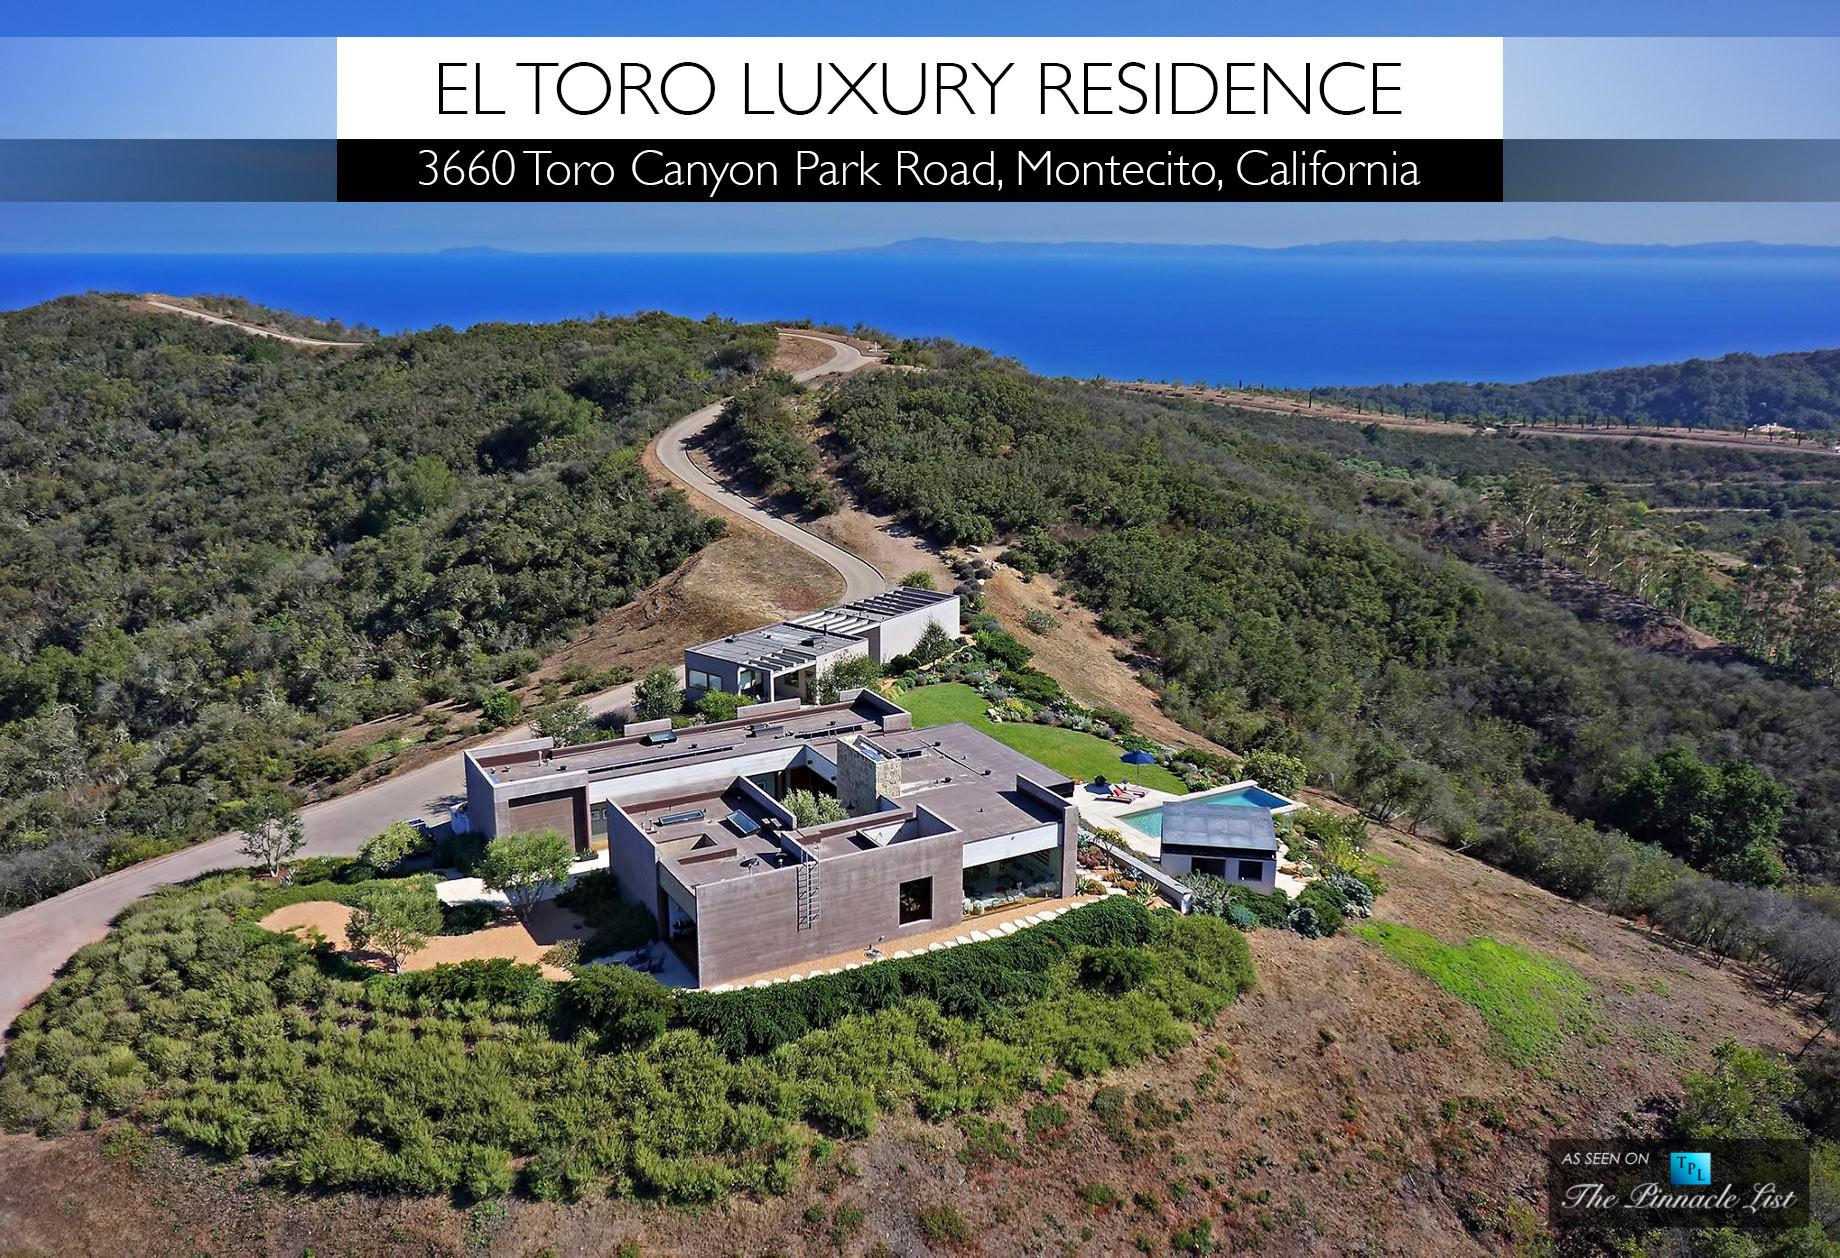 Toro Luxury Residence 3660 Canyon Park Road